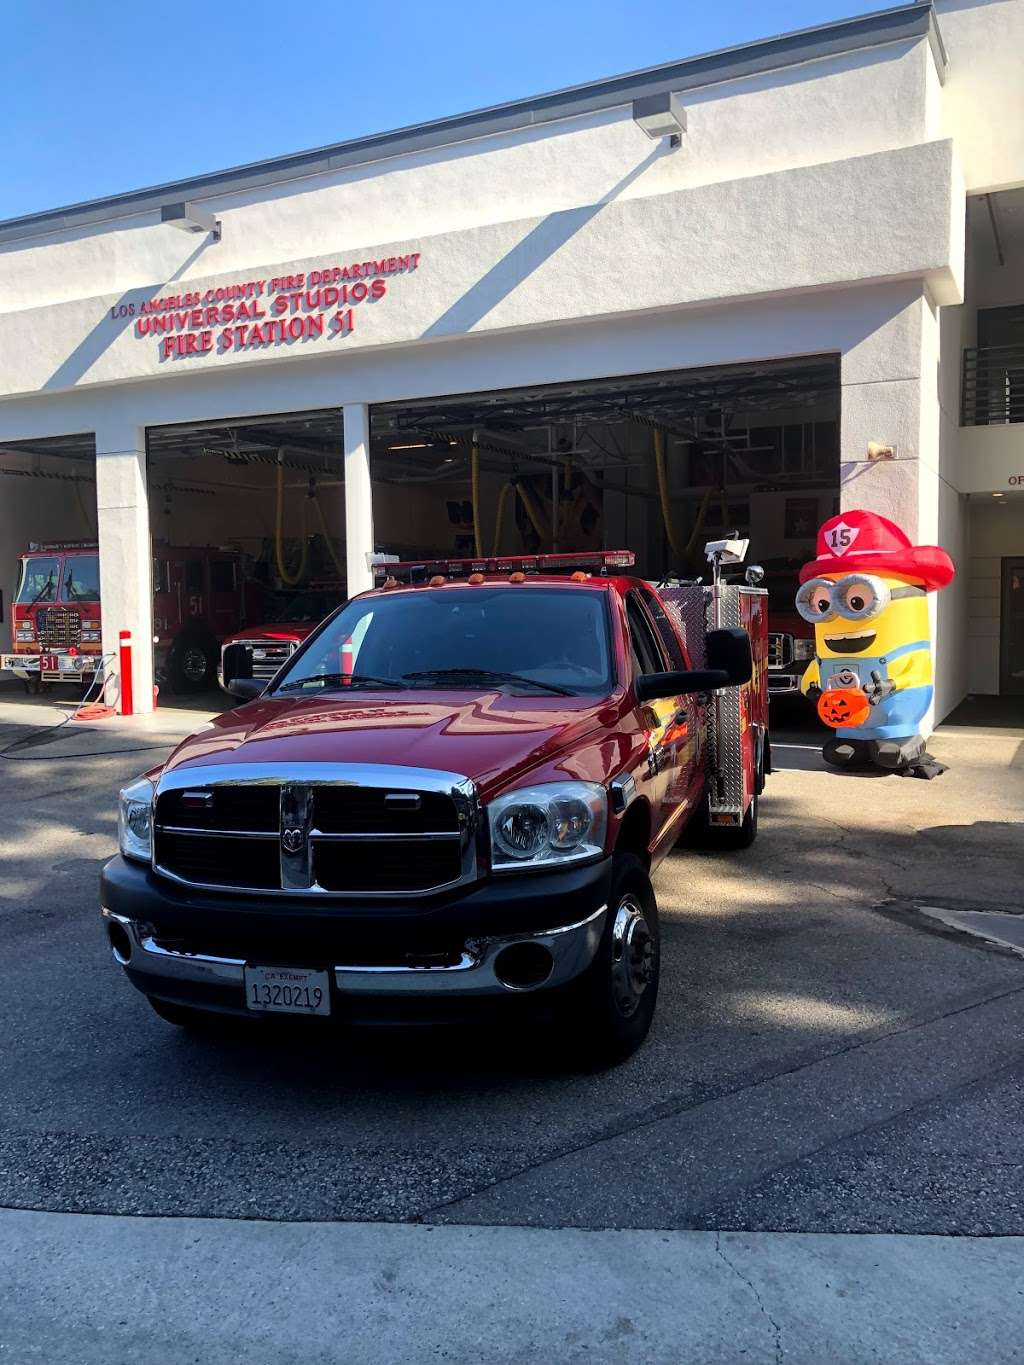 Los Angeles County Fire Dept. Station 51 - fire station  | Photo 5 of 8 | Address: 3900 Lankershim Blvd, North Hollywood, CA 91602, USA | Phone: (323) 877-4412